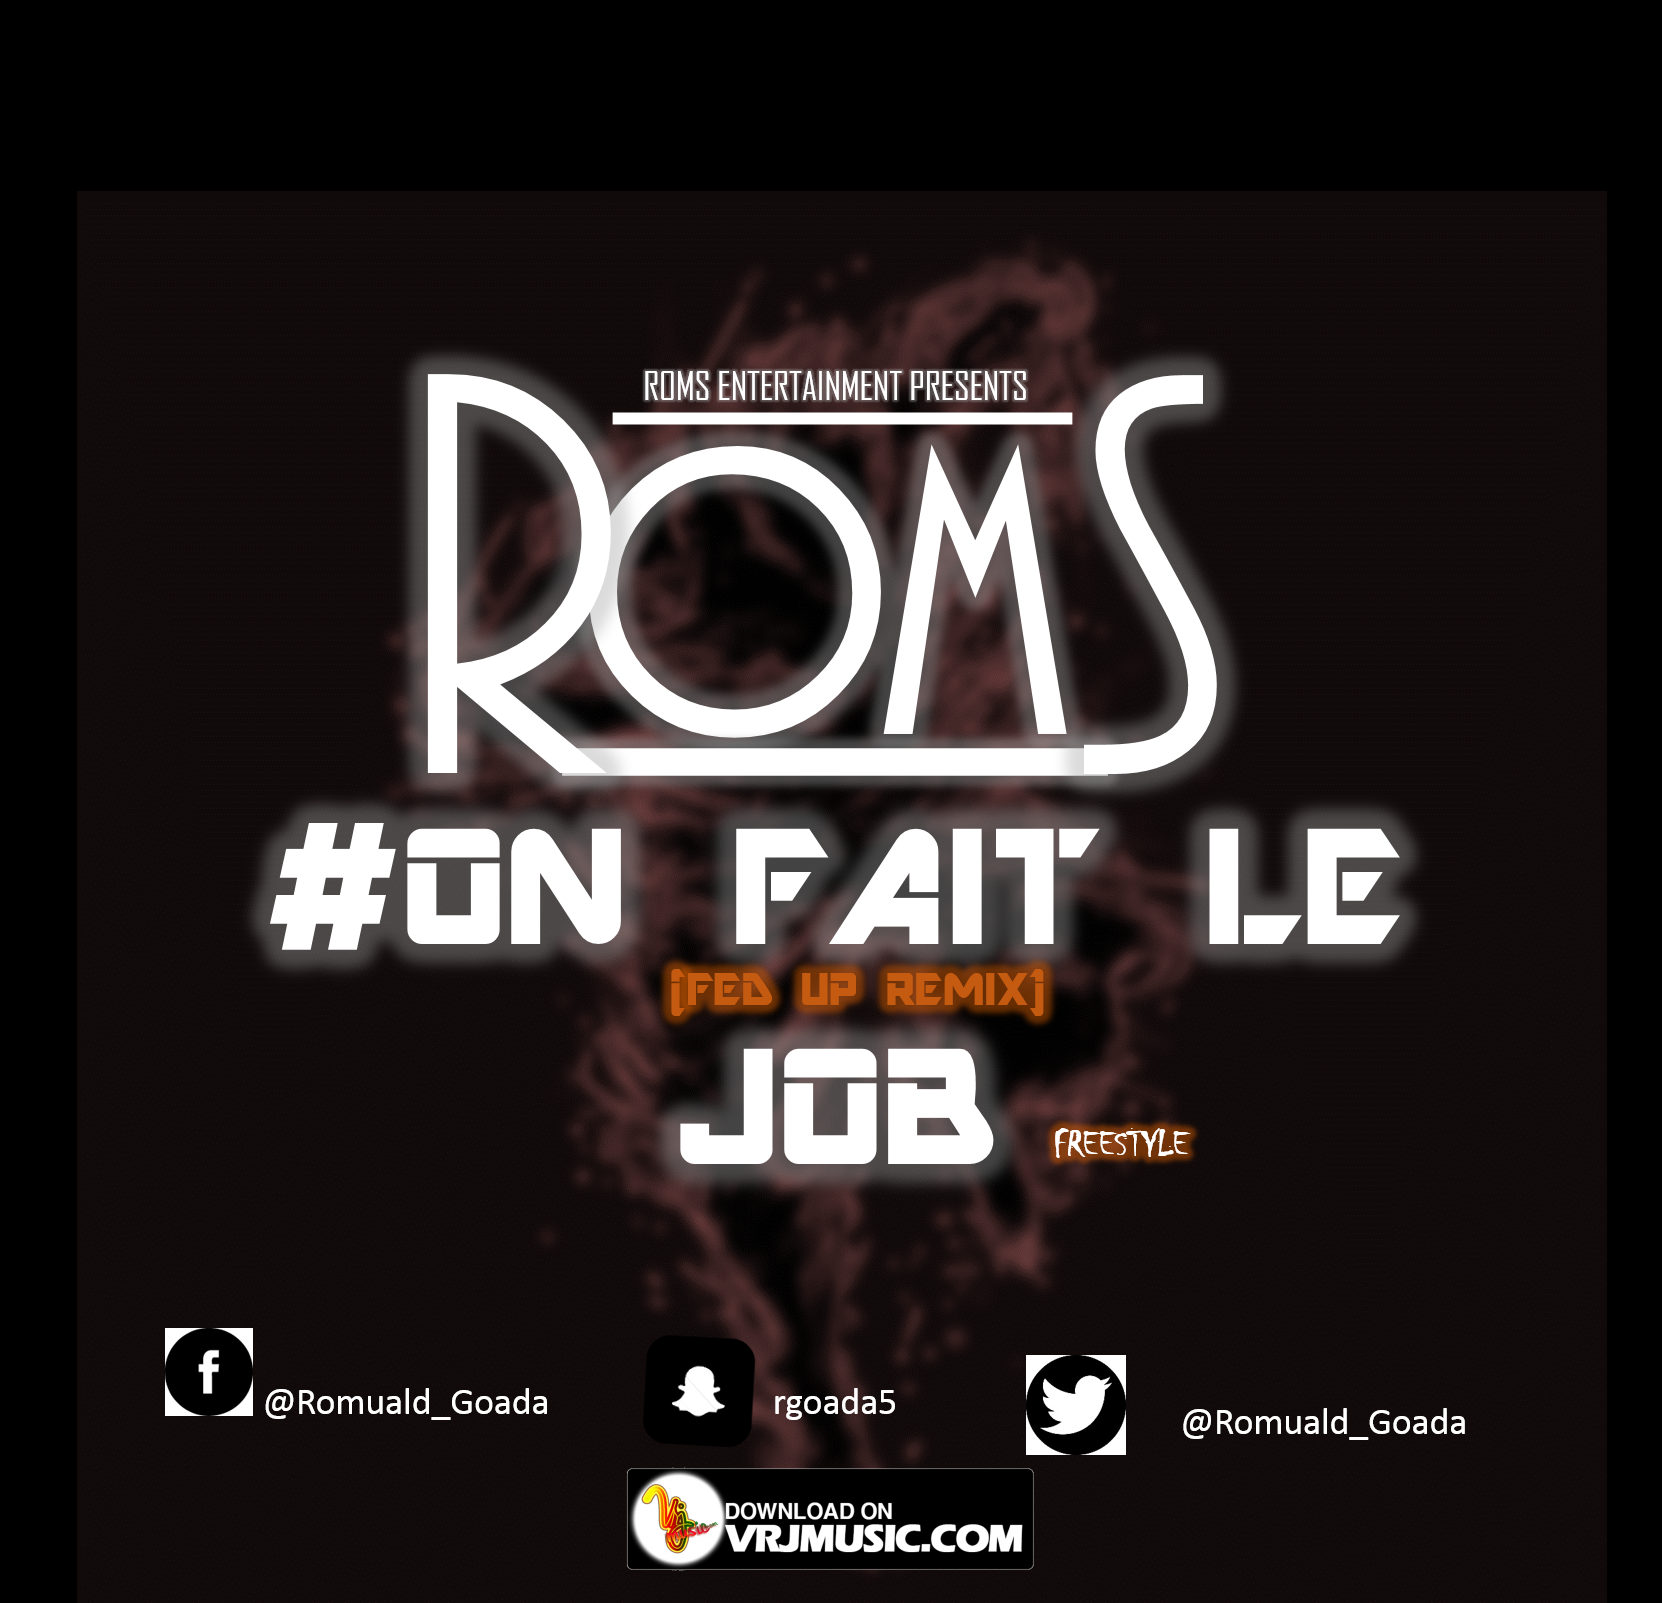 On fait Le Job (Fed up Rmx)